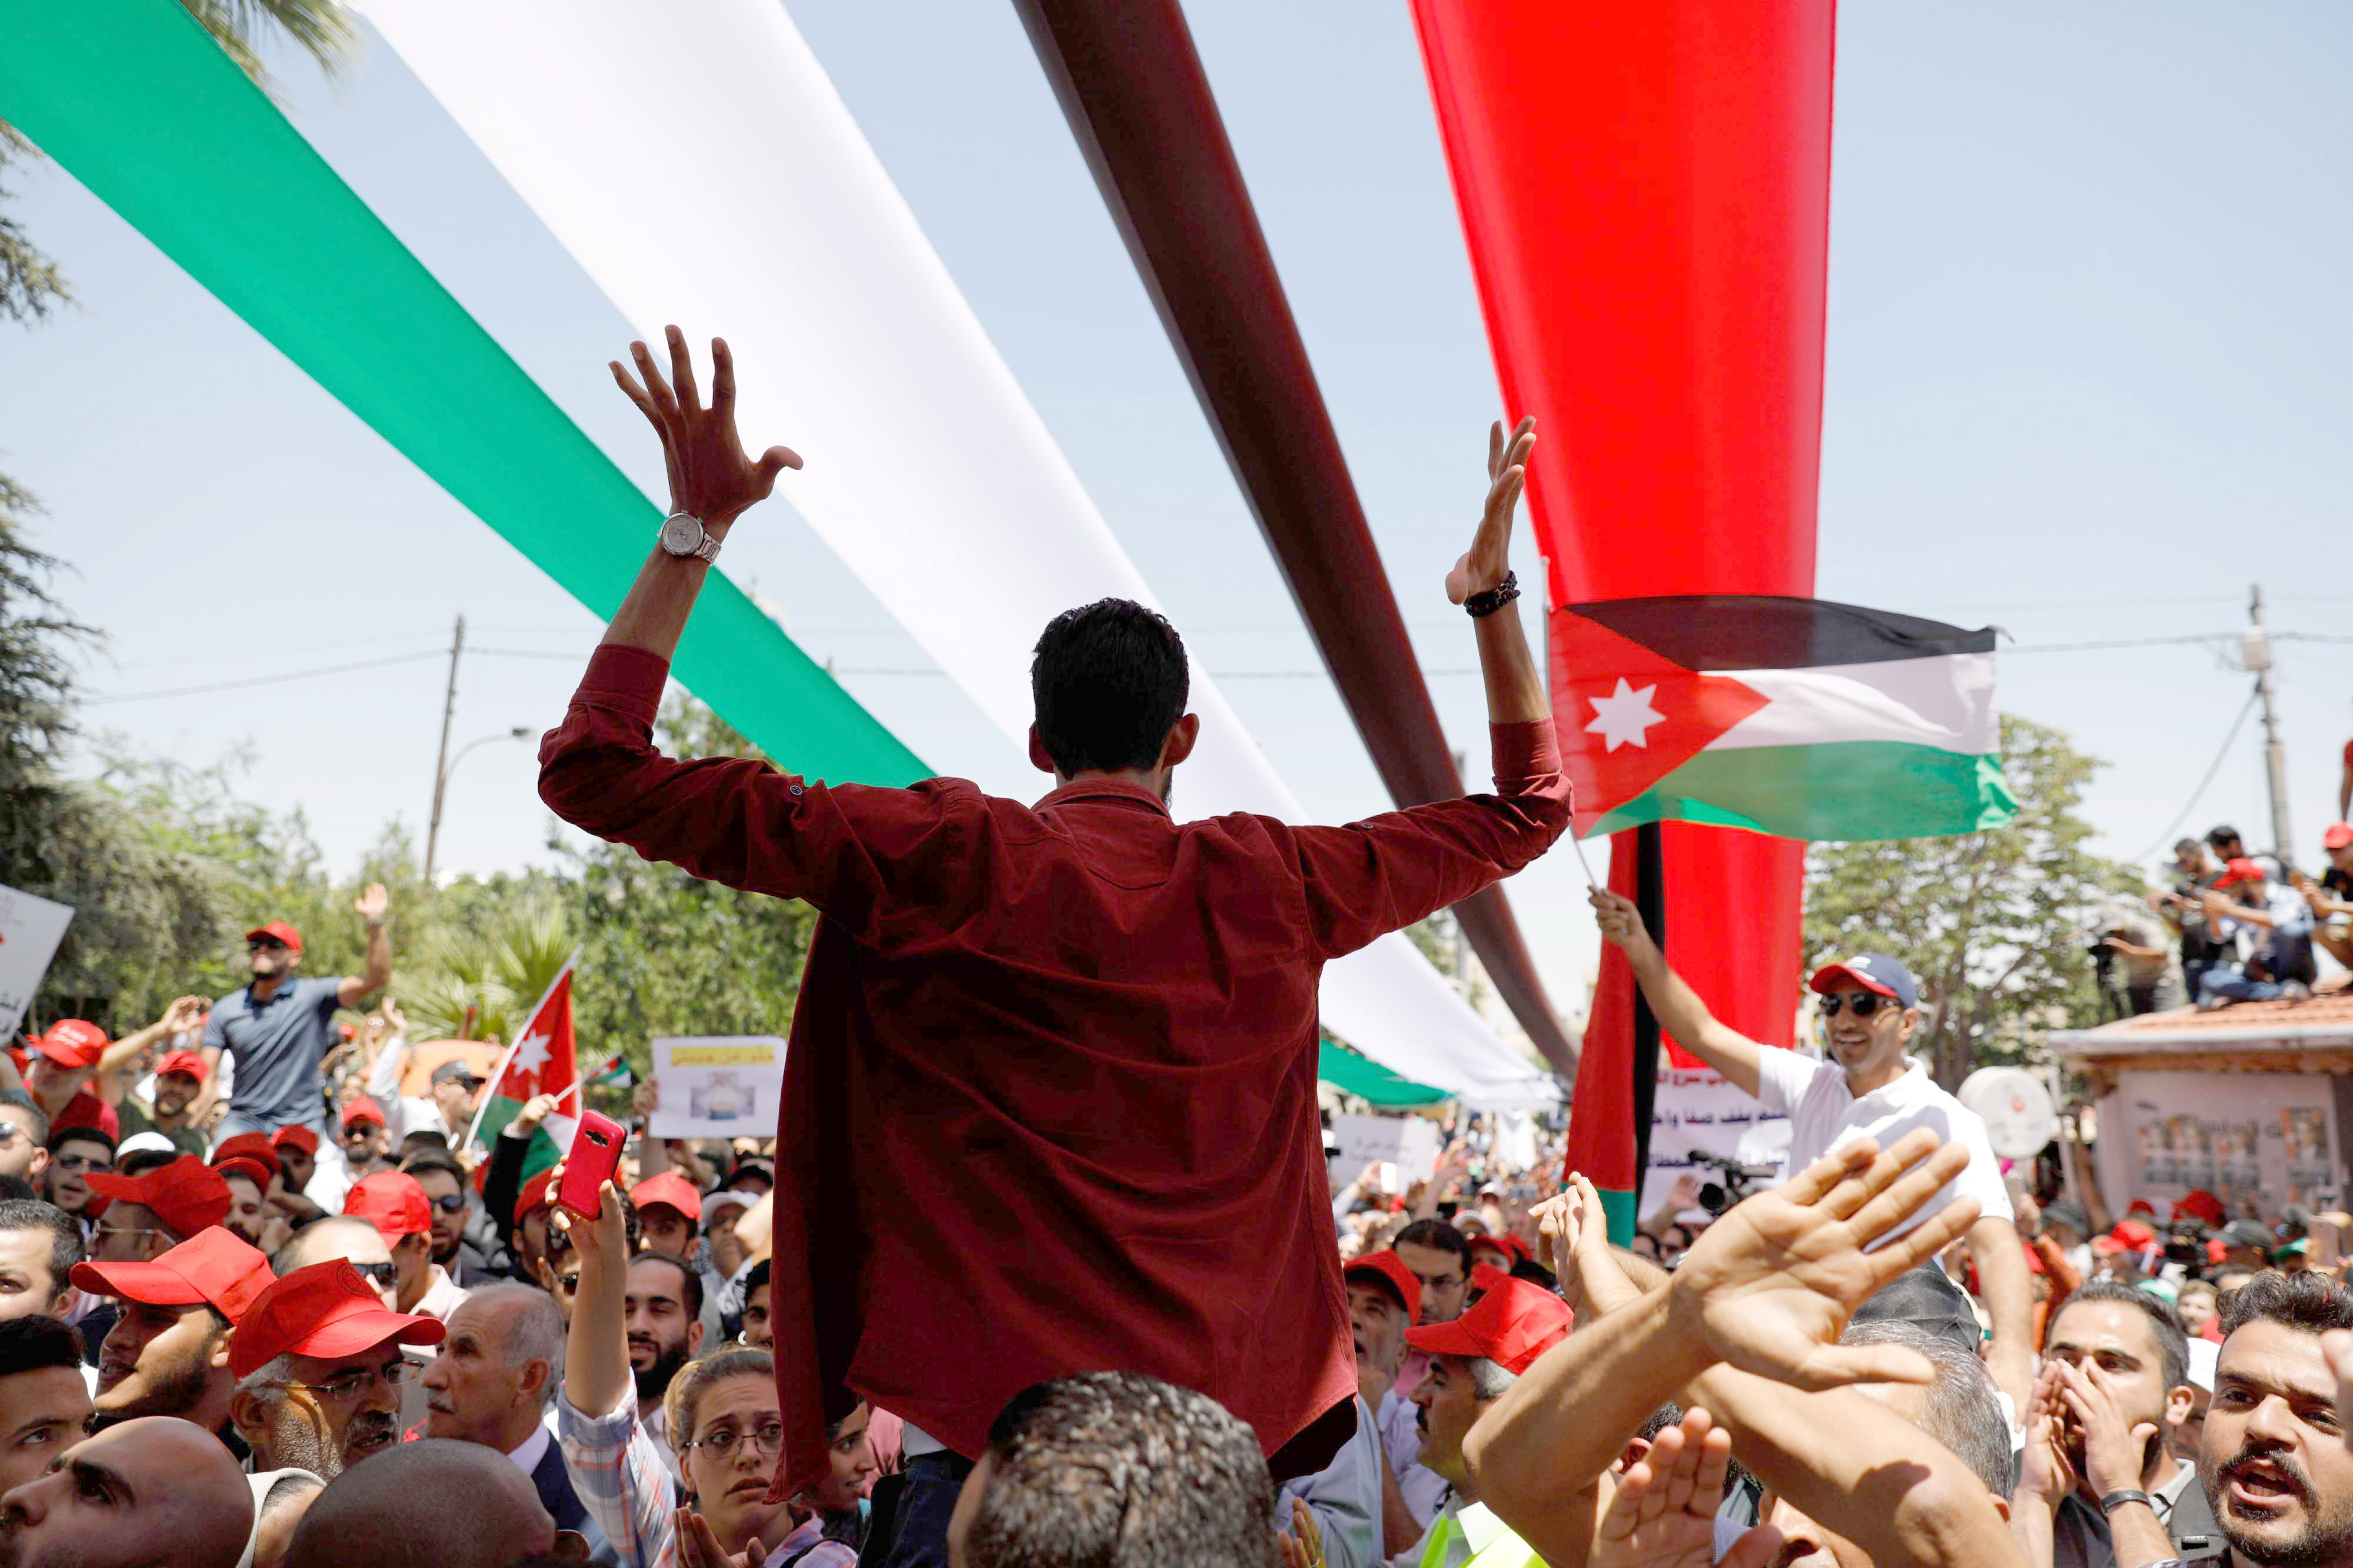 Jordanian protesters chant slogans during an anti-austerity rally in Amman, on June 6. (AFP)